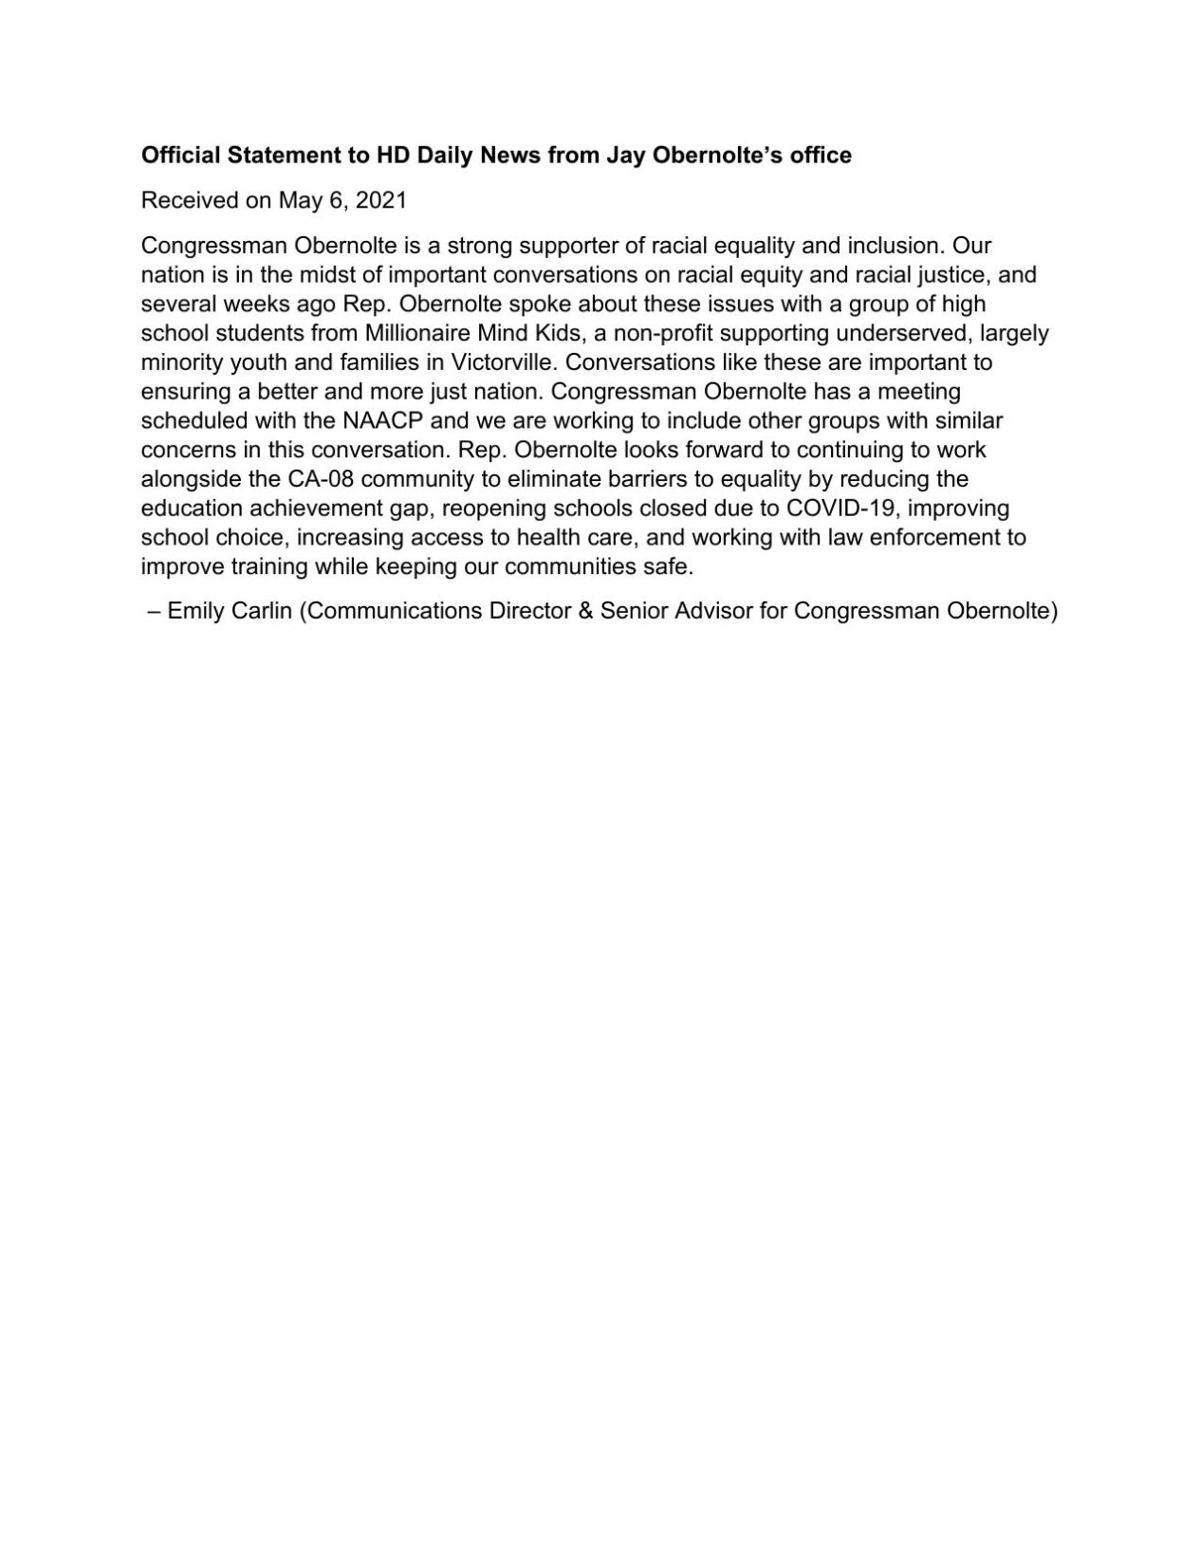 FILE: Jay Obernolte response - racial equity